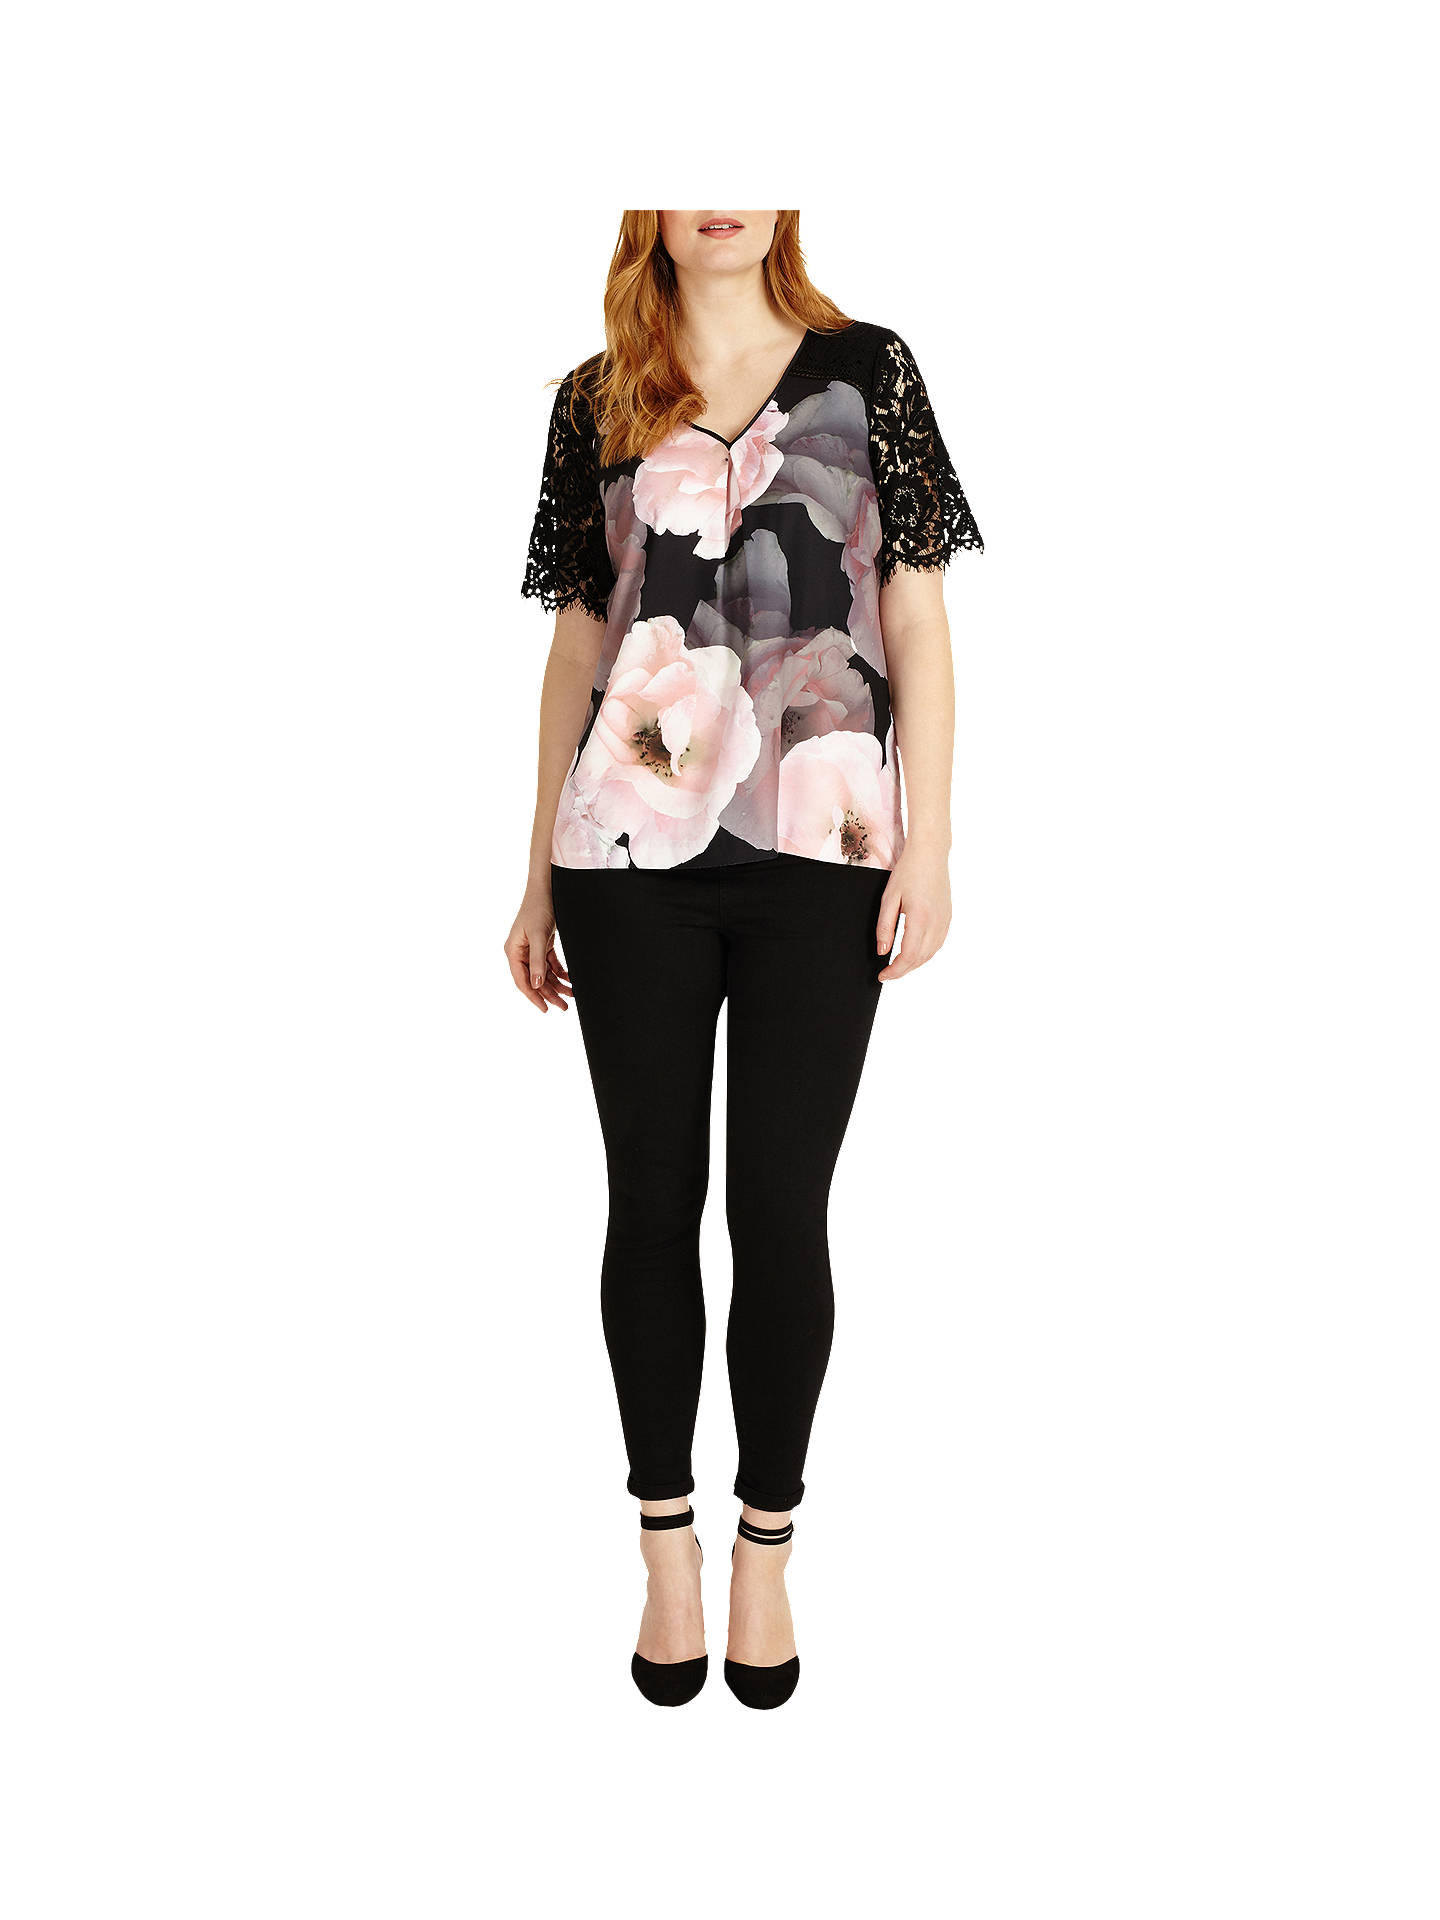 BuyStudio 8 Abby Top, Black/Pink, 12 Online at johnlewis.com